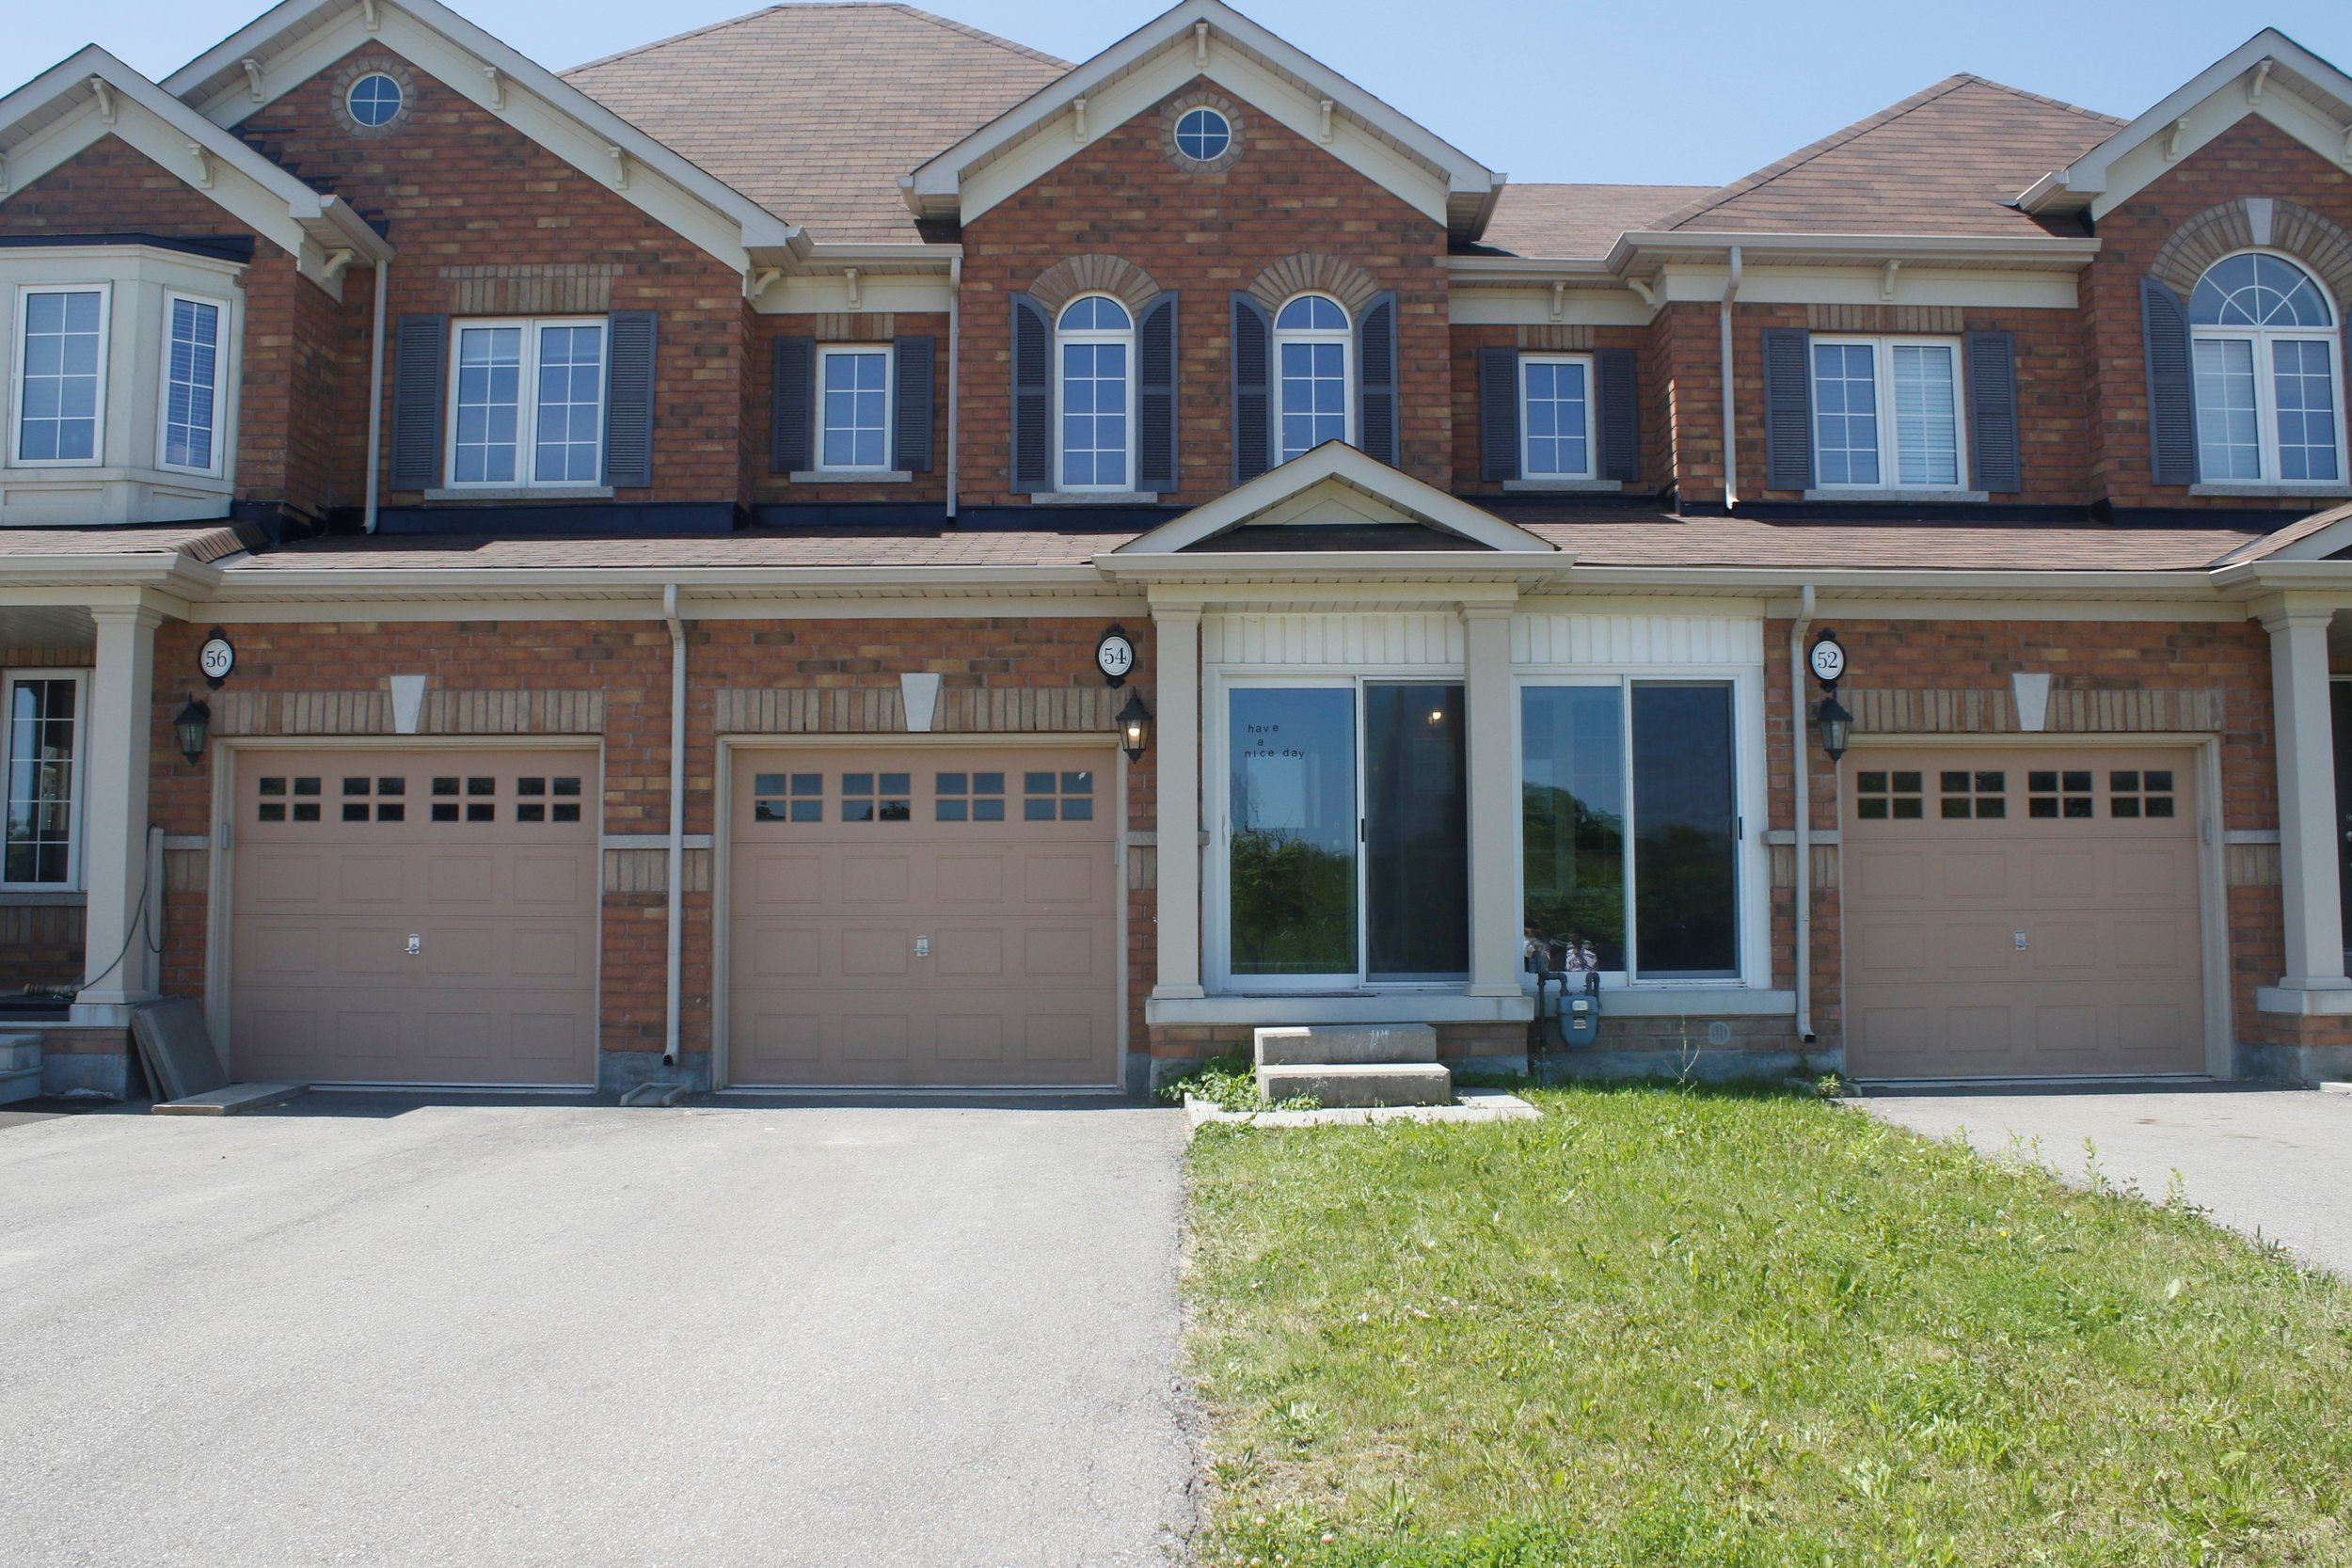 54 Juneberry, Thorold - For Sale $379,000 |在12天內賣出了98%的詢價